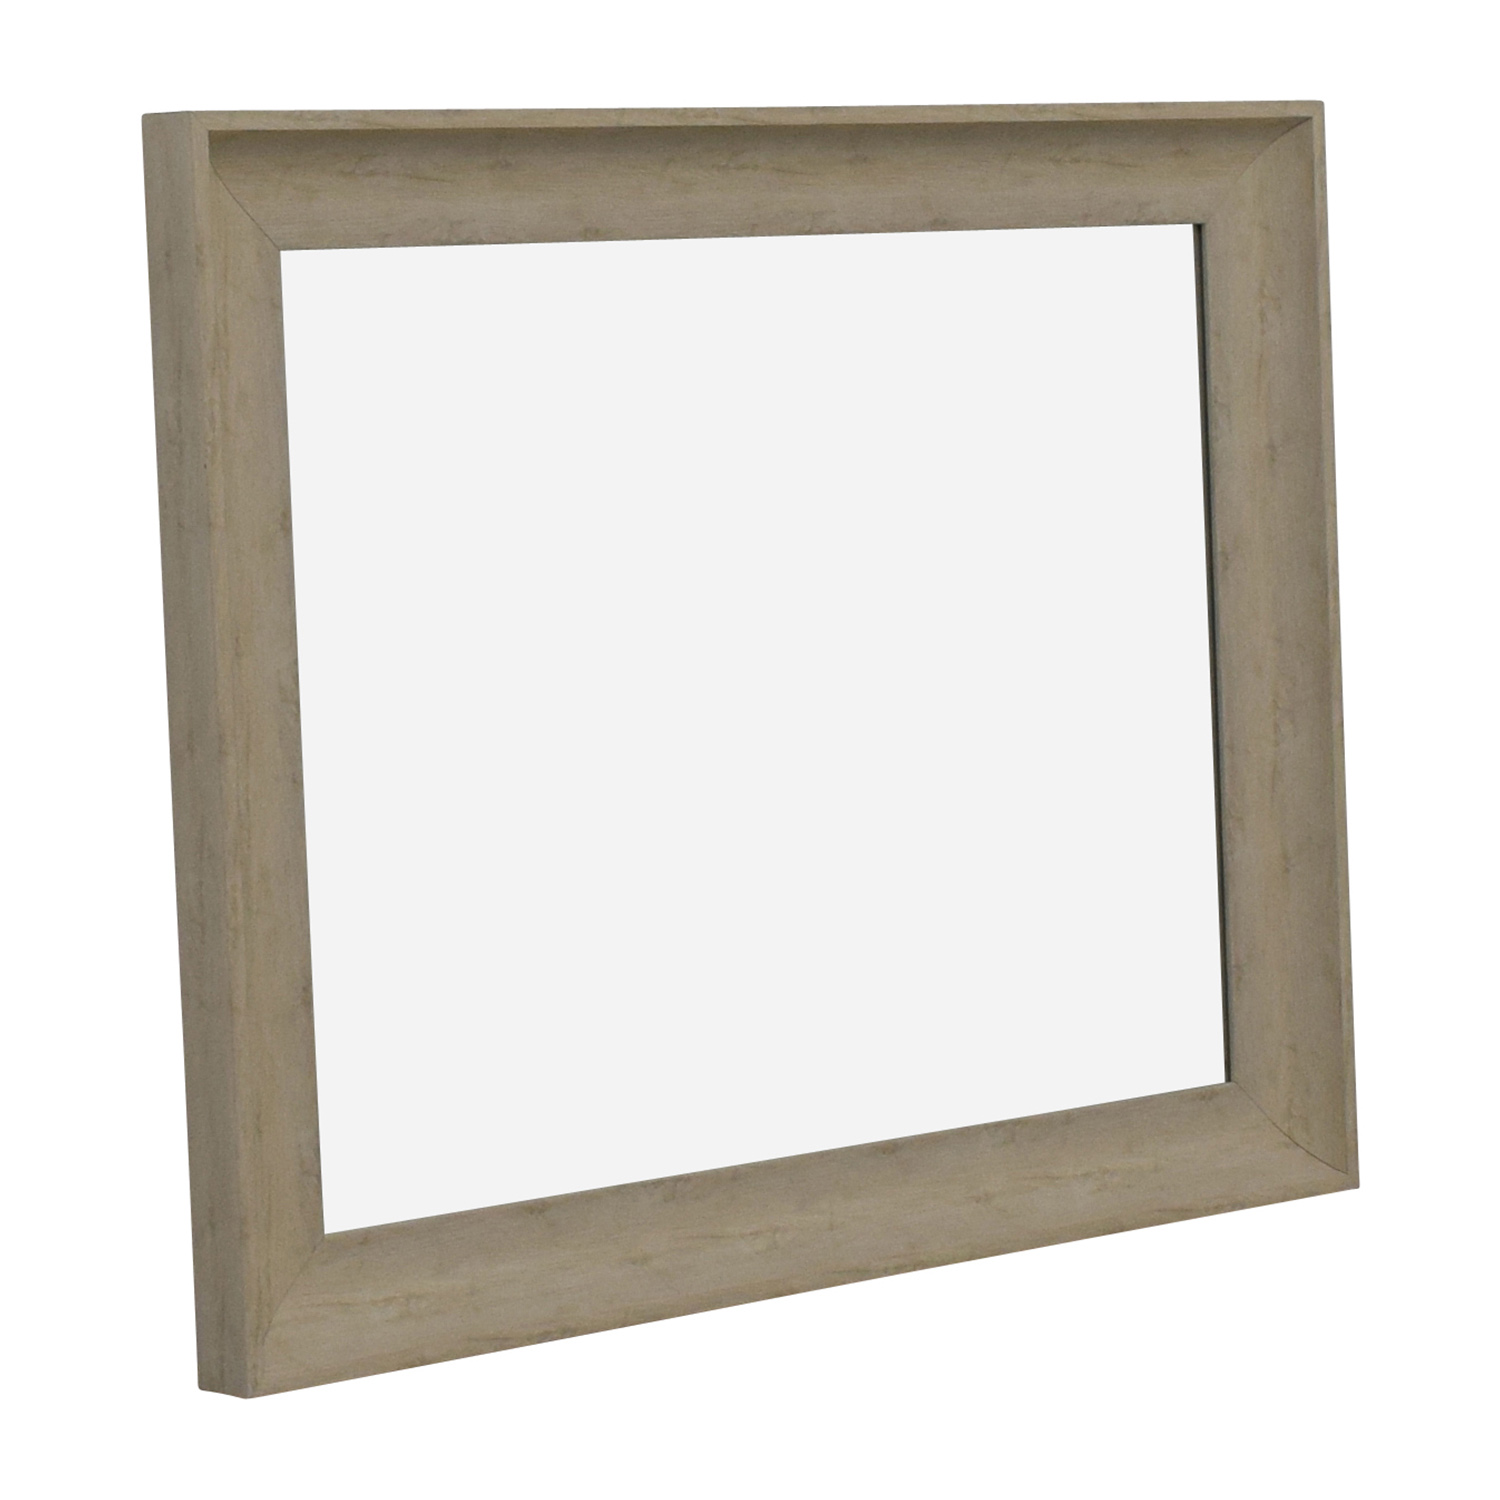 BP Industries BP Industries Decorative Wooden Mirror second hand